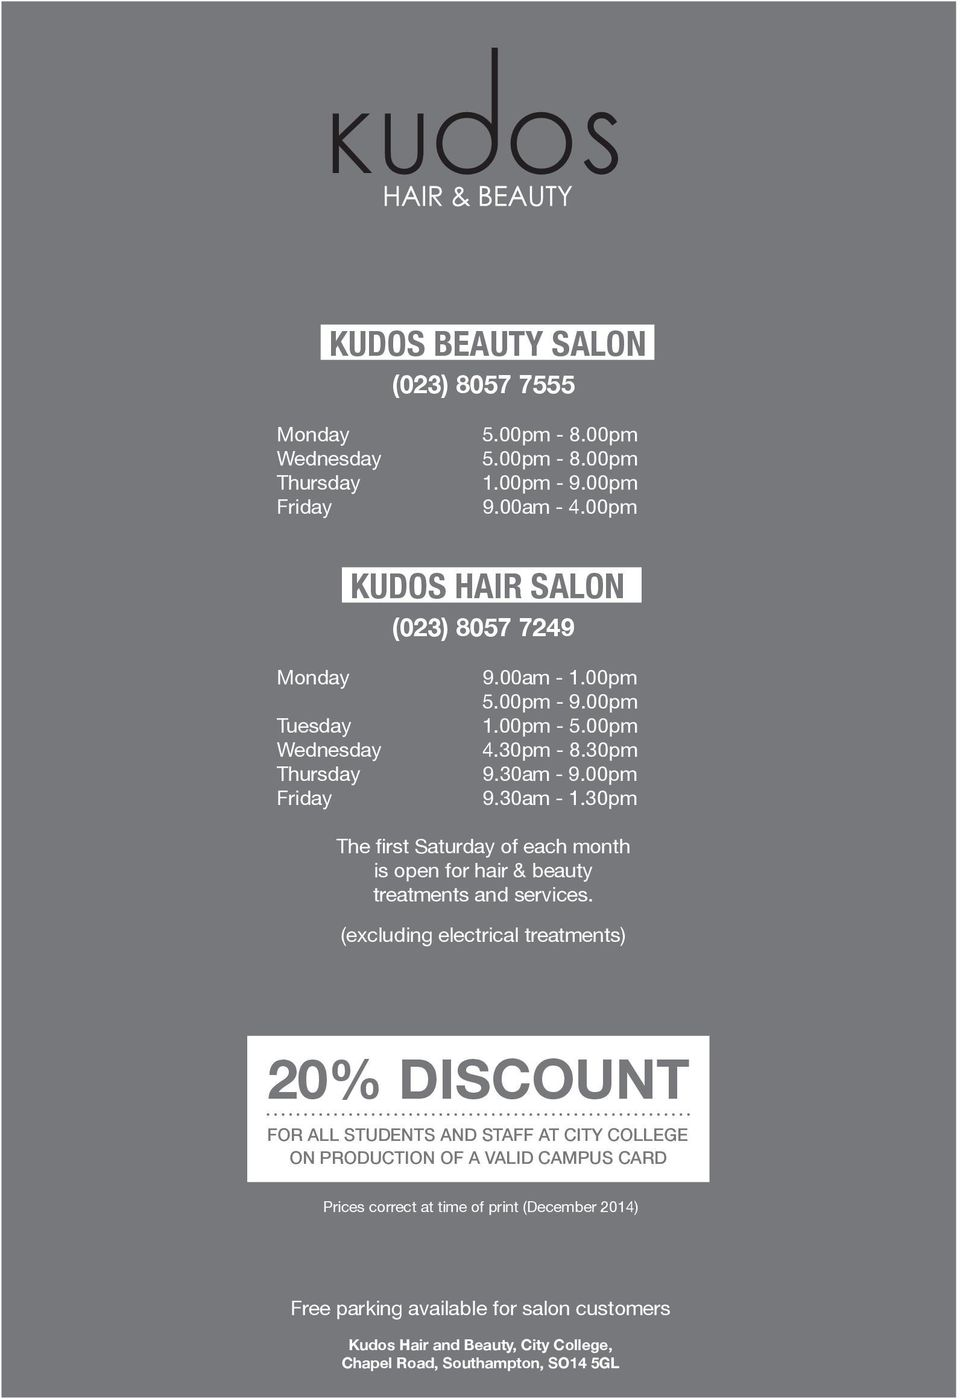 30am - 1.30pm The first Saturday of each month is open for hair & beauty treatments and services.